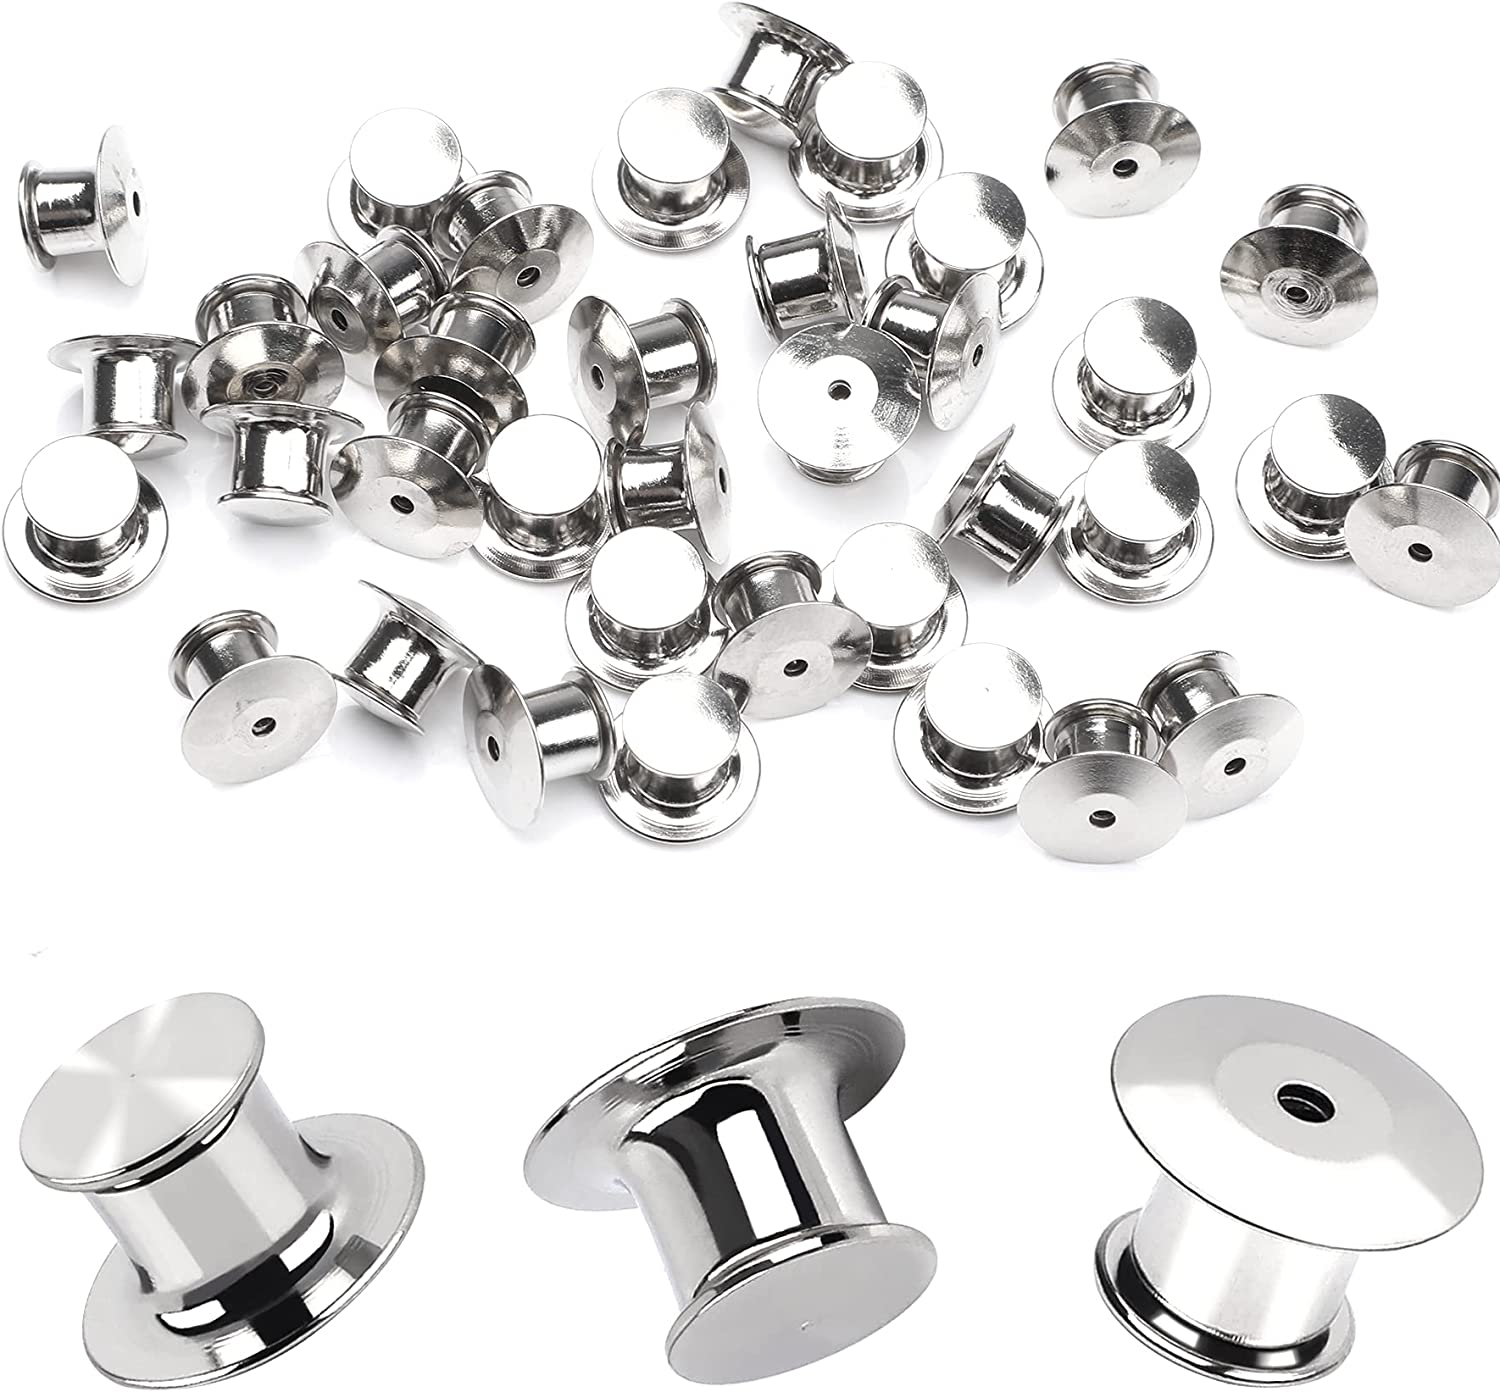 30 Pieces Metal Pin Backs Locking Keepers Clasp Max 69% Ranking TOP13 OFF